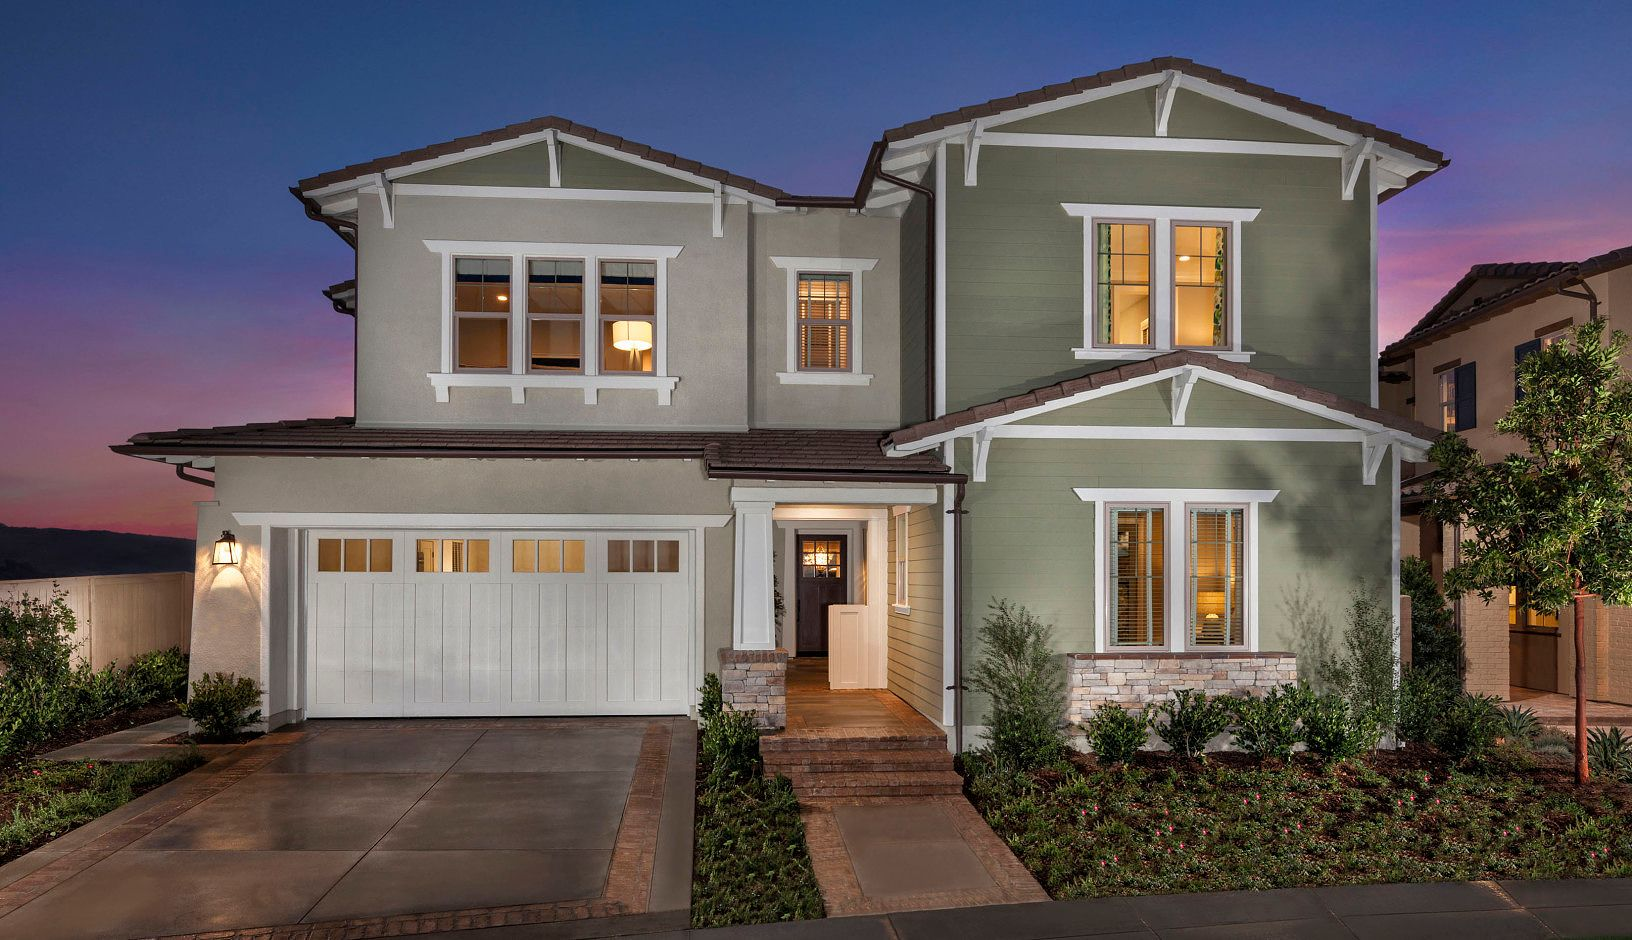 Single Family for Sale at Aubergine At Esencia - Residence 3 4 Cadencia Street Ladera Ranch, California 92694 United States